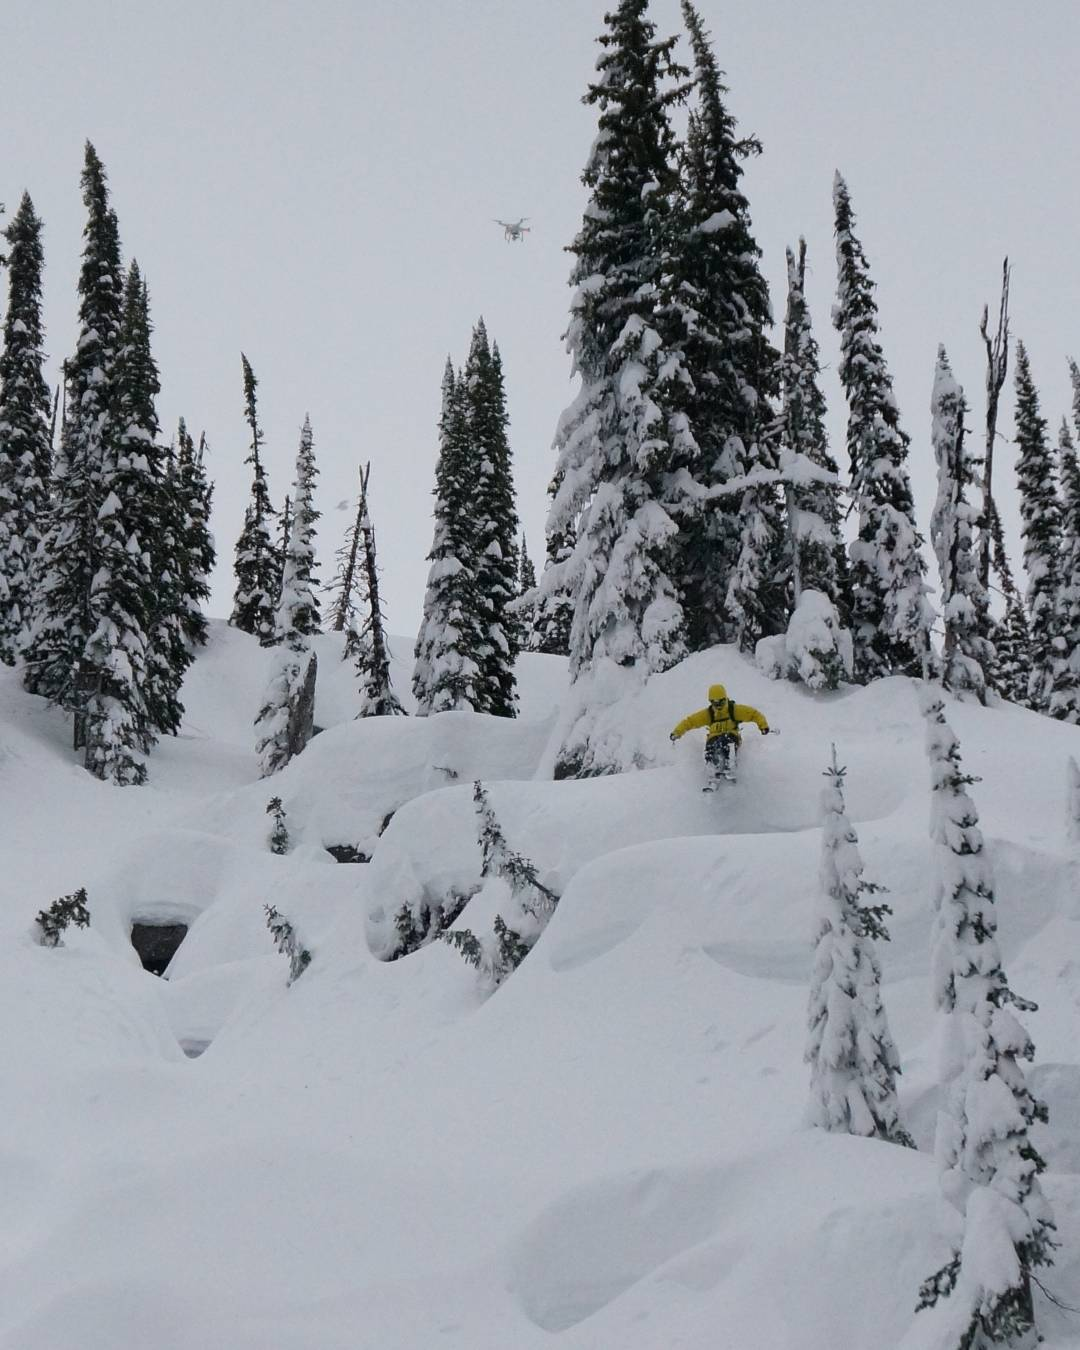 DPS pro-team rider @pierssolomon zipping through the pillows @solmountainlodge. Photo: @ermepowskier. #DPSCinematic #backcountry #skiing